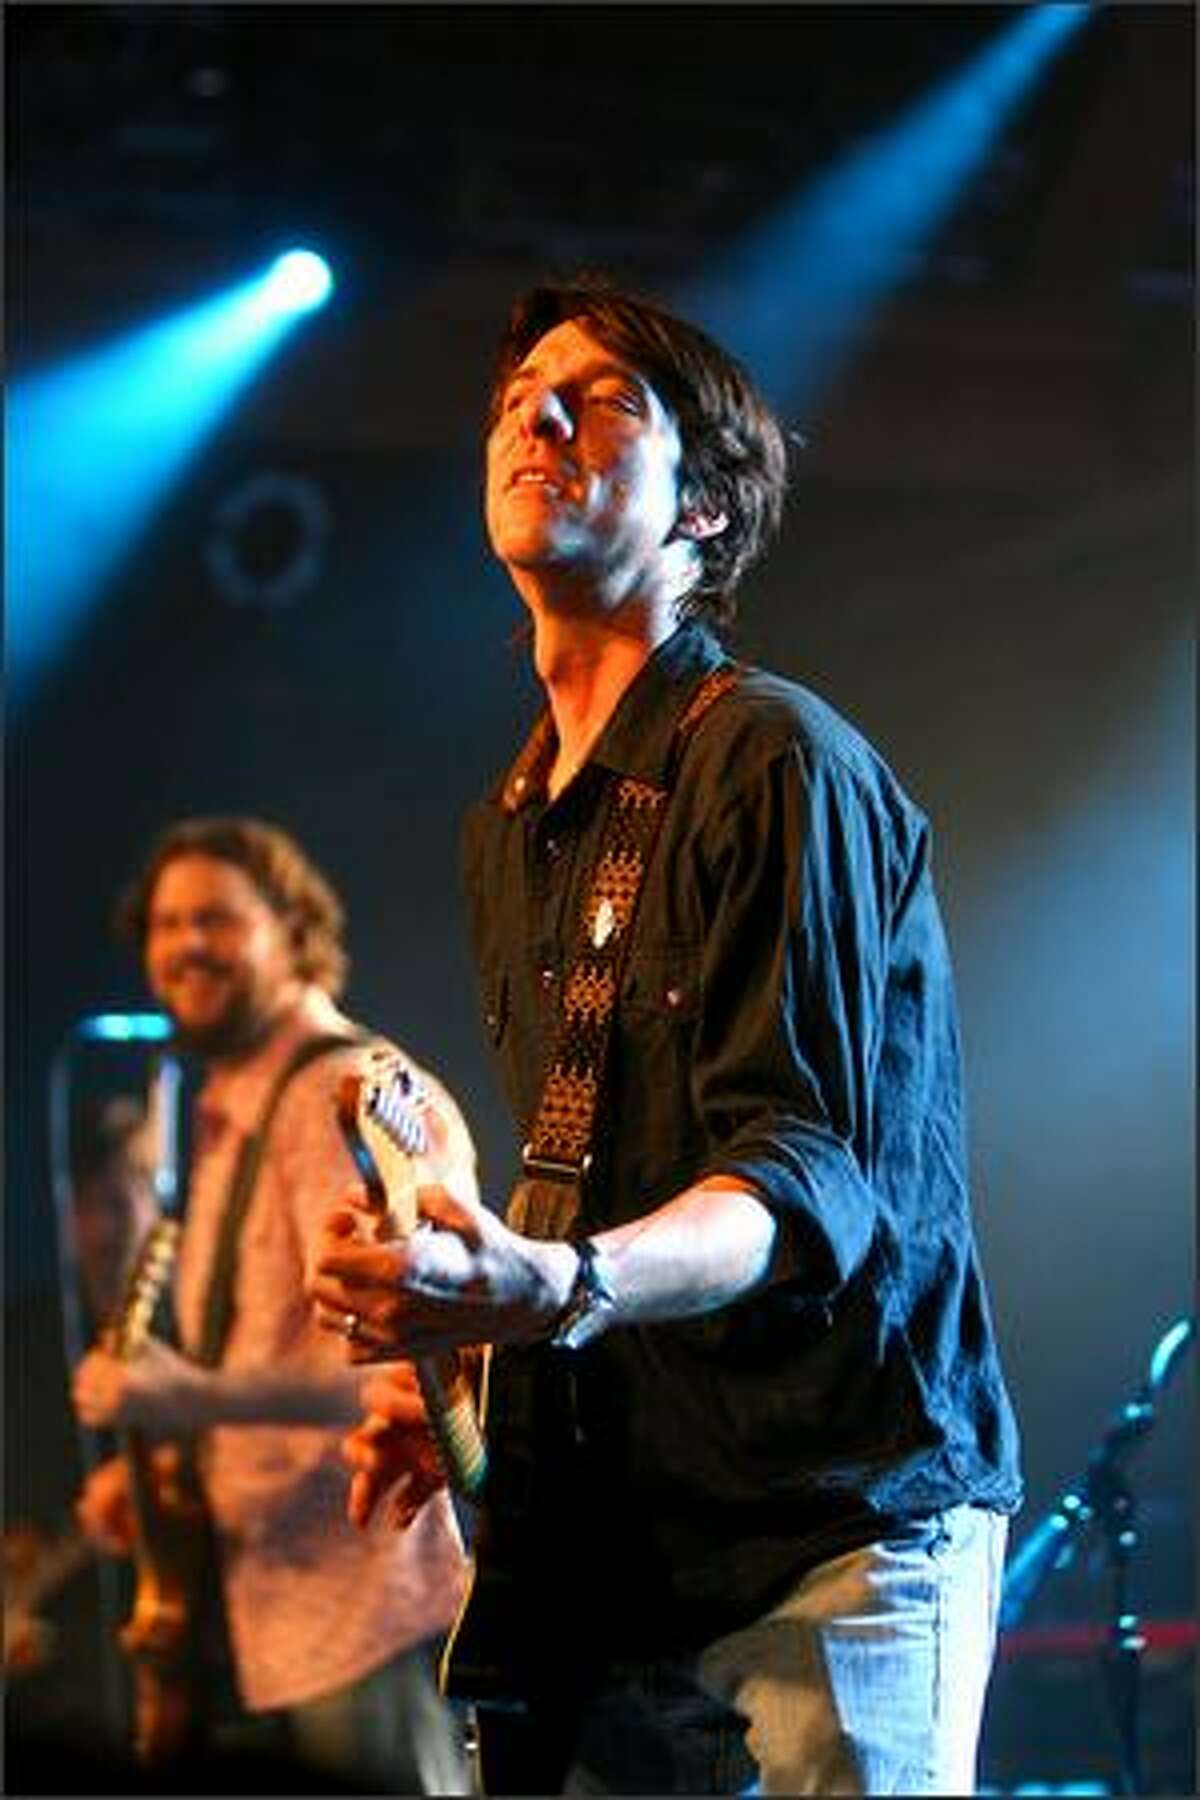 Guitarist and singer Mike Cooley of the Drive-By Truckers performs at the Showbox Sodo in Seattle on Thursday night.